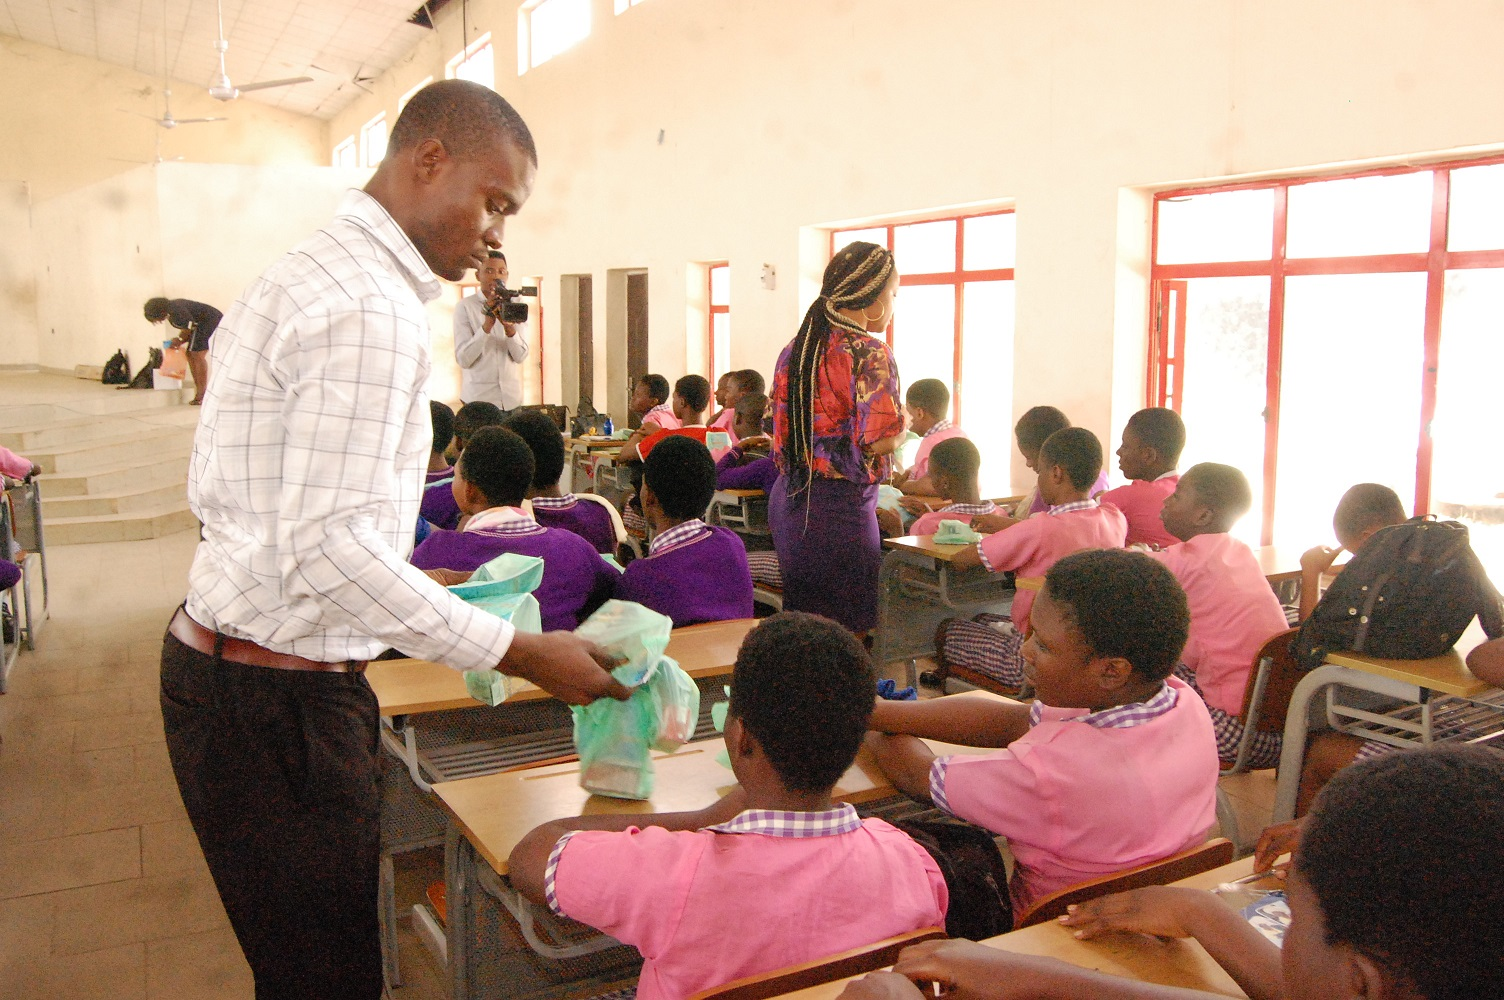 Distribution of souvenirs to the students